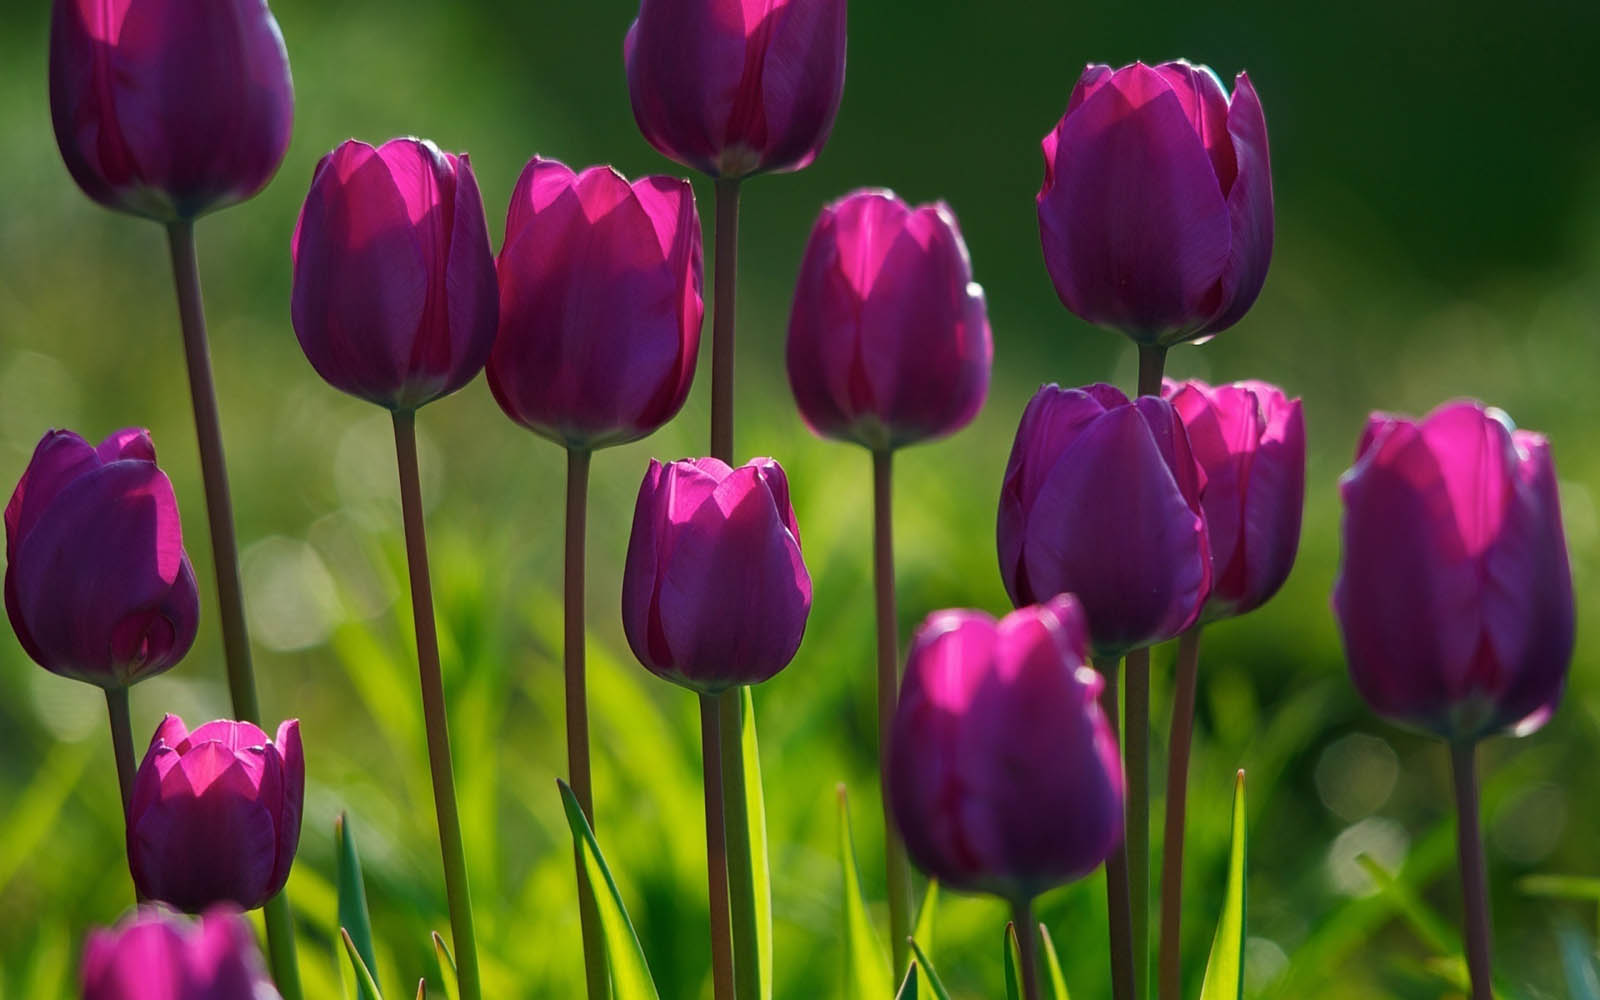 Spring flowers desktop backgrounds flowers healthy flowers desktop wallpapers purple tulips flowers desktop backgrounds 1600x1000 1600x1000px free spring flower desktop wallpaper wallpapersafari mightylinksfo